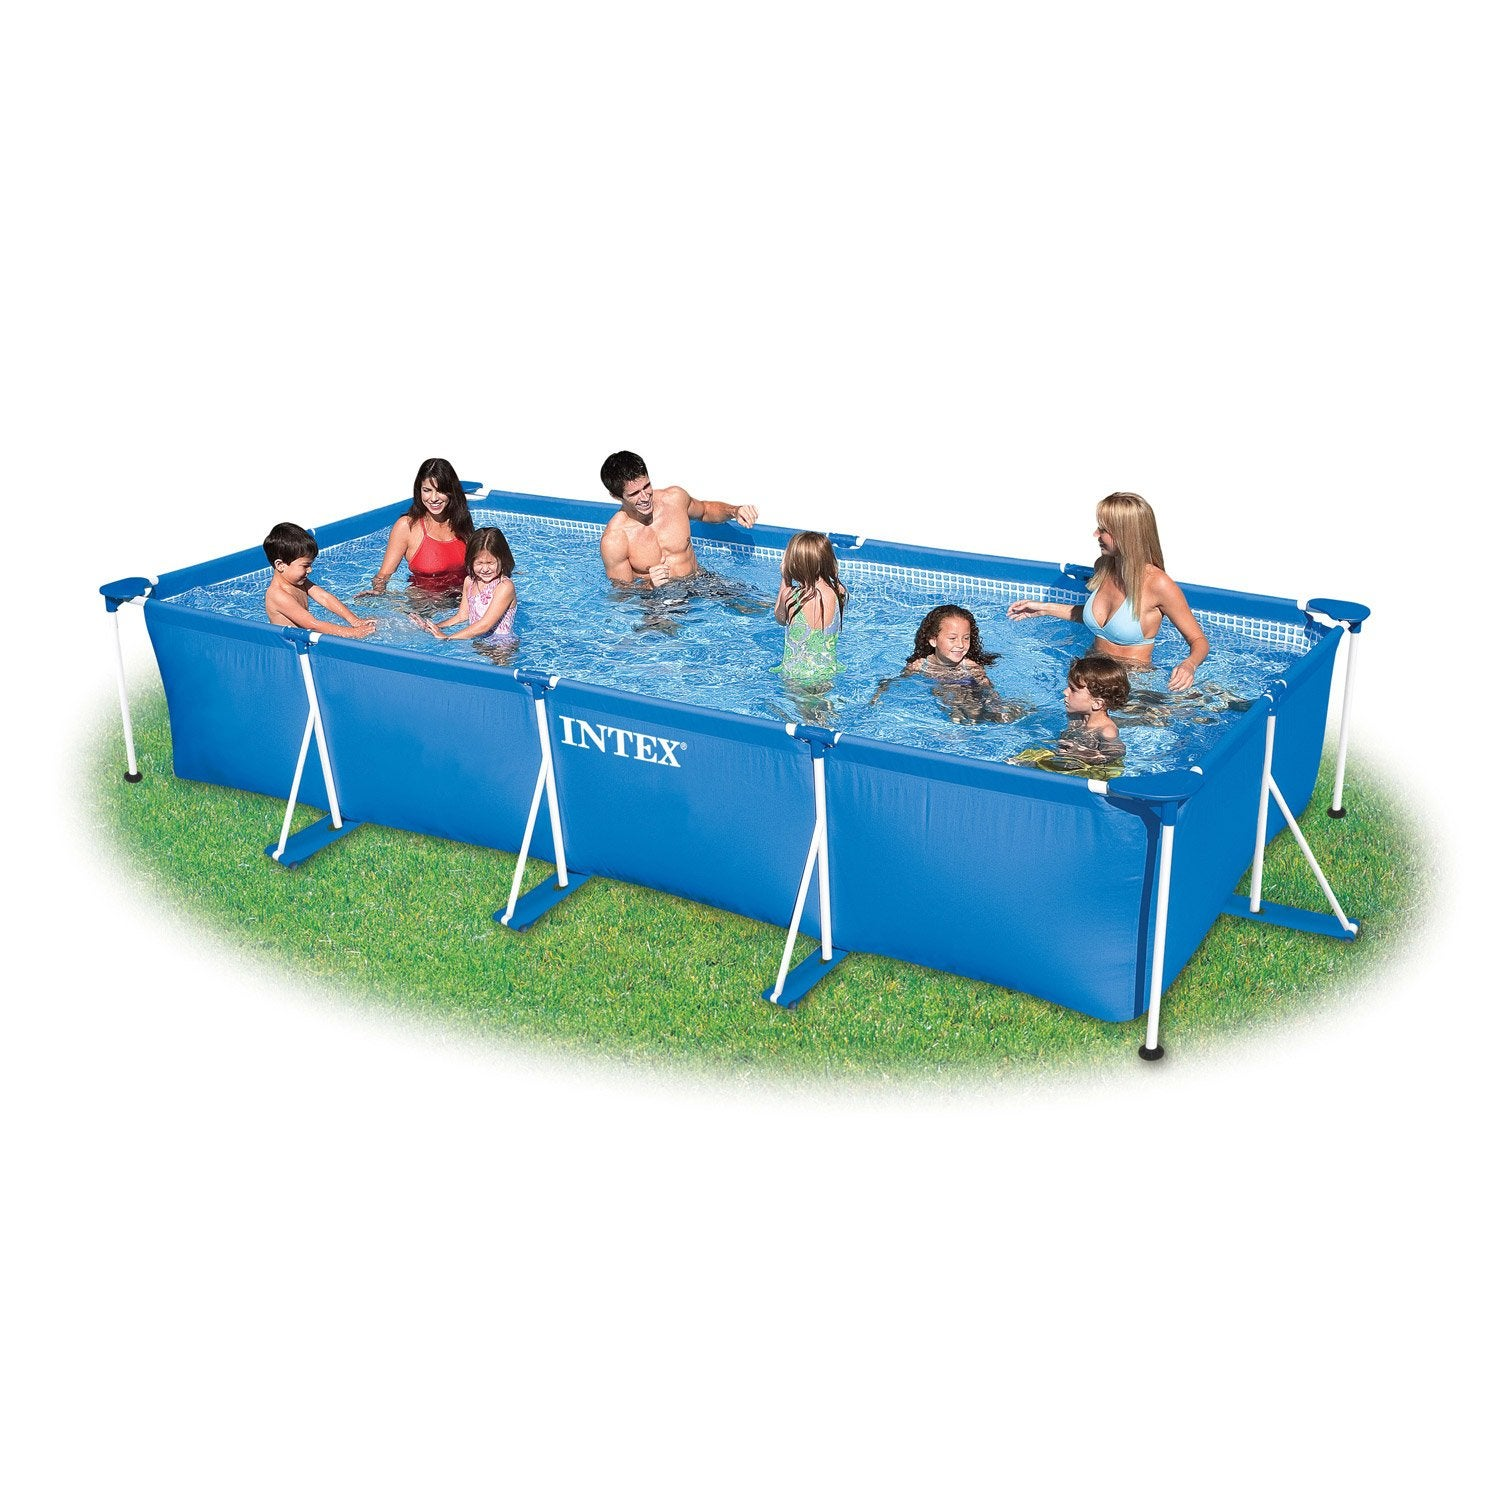 Piscine hors sol autoportante tubulaire intex l x l for Norme piscine hors sol